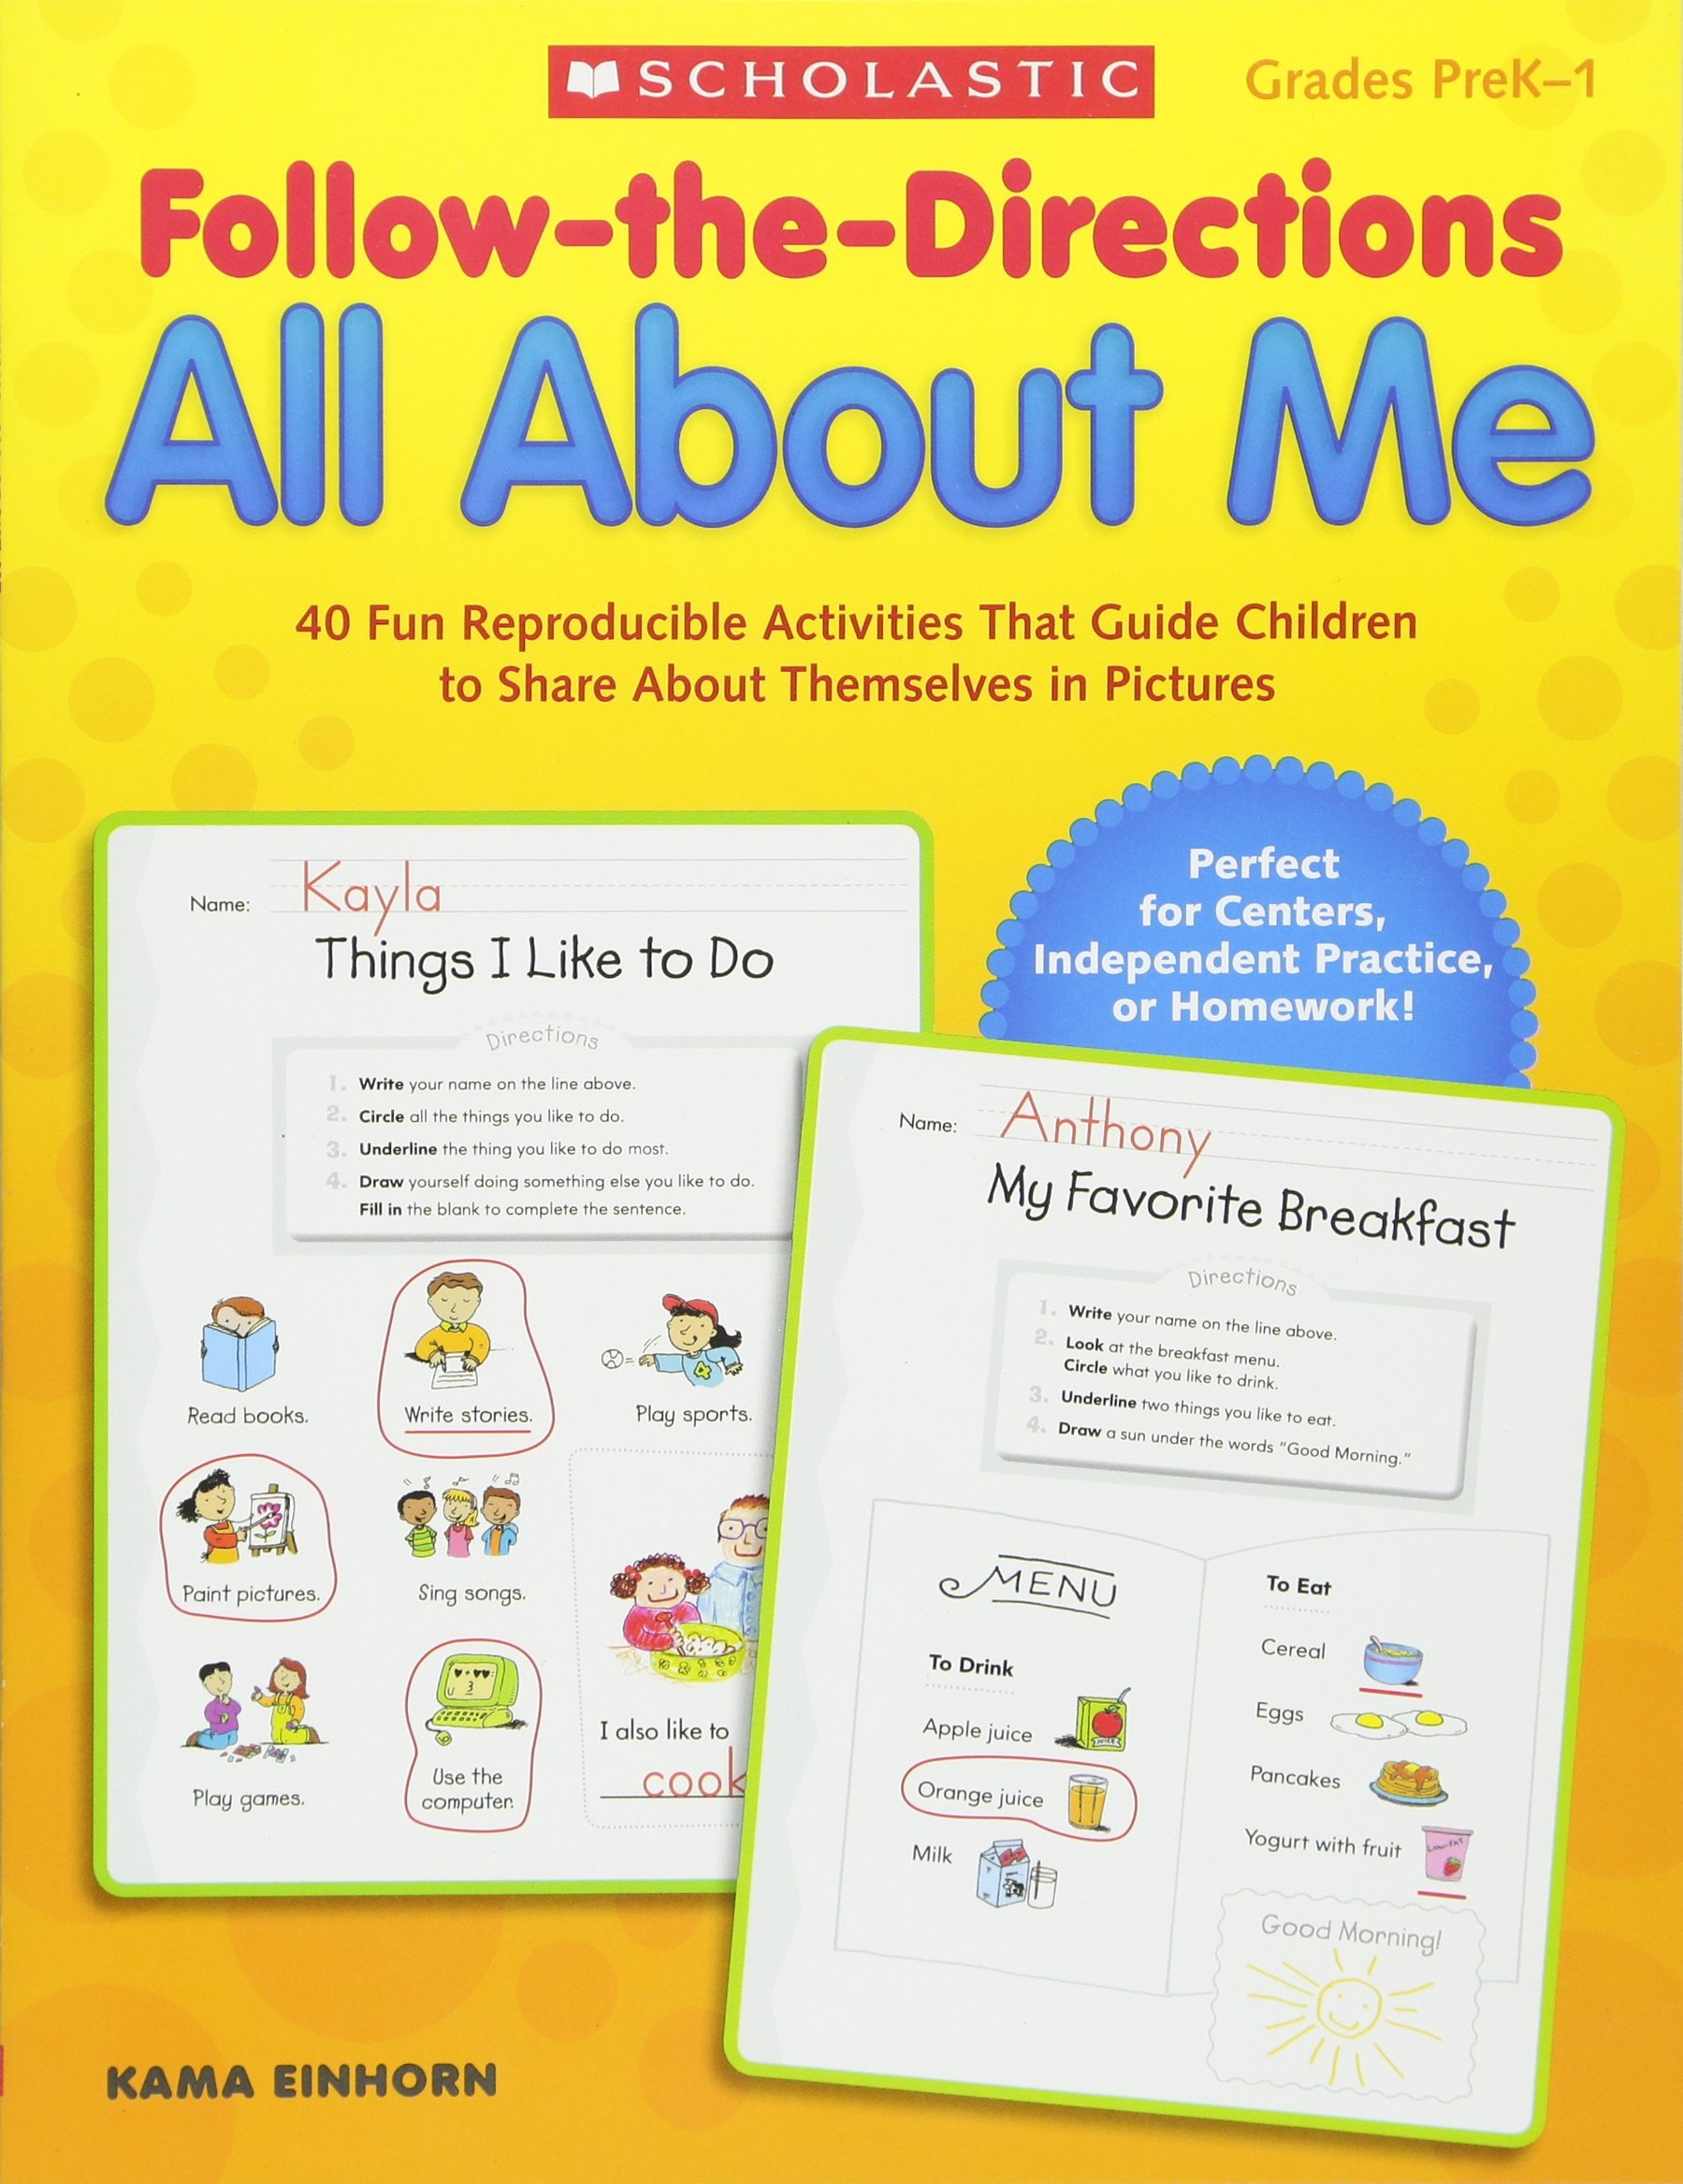 Follow-the-Directions All About Me: 40 Fun Reproducible